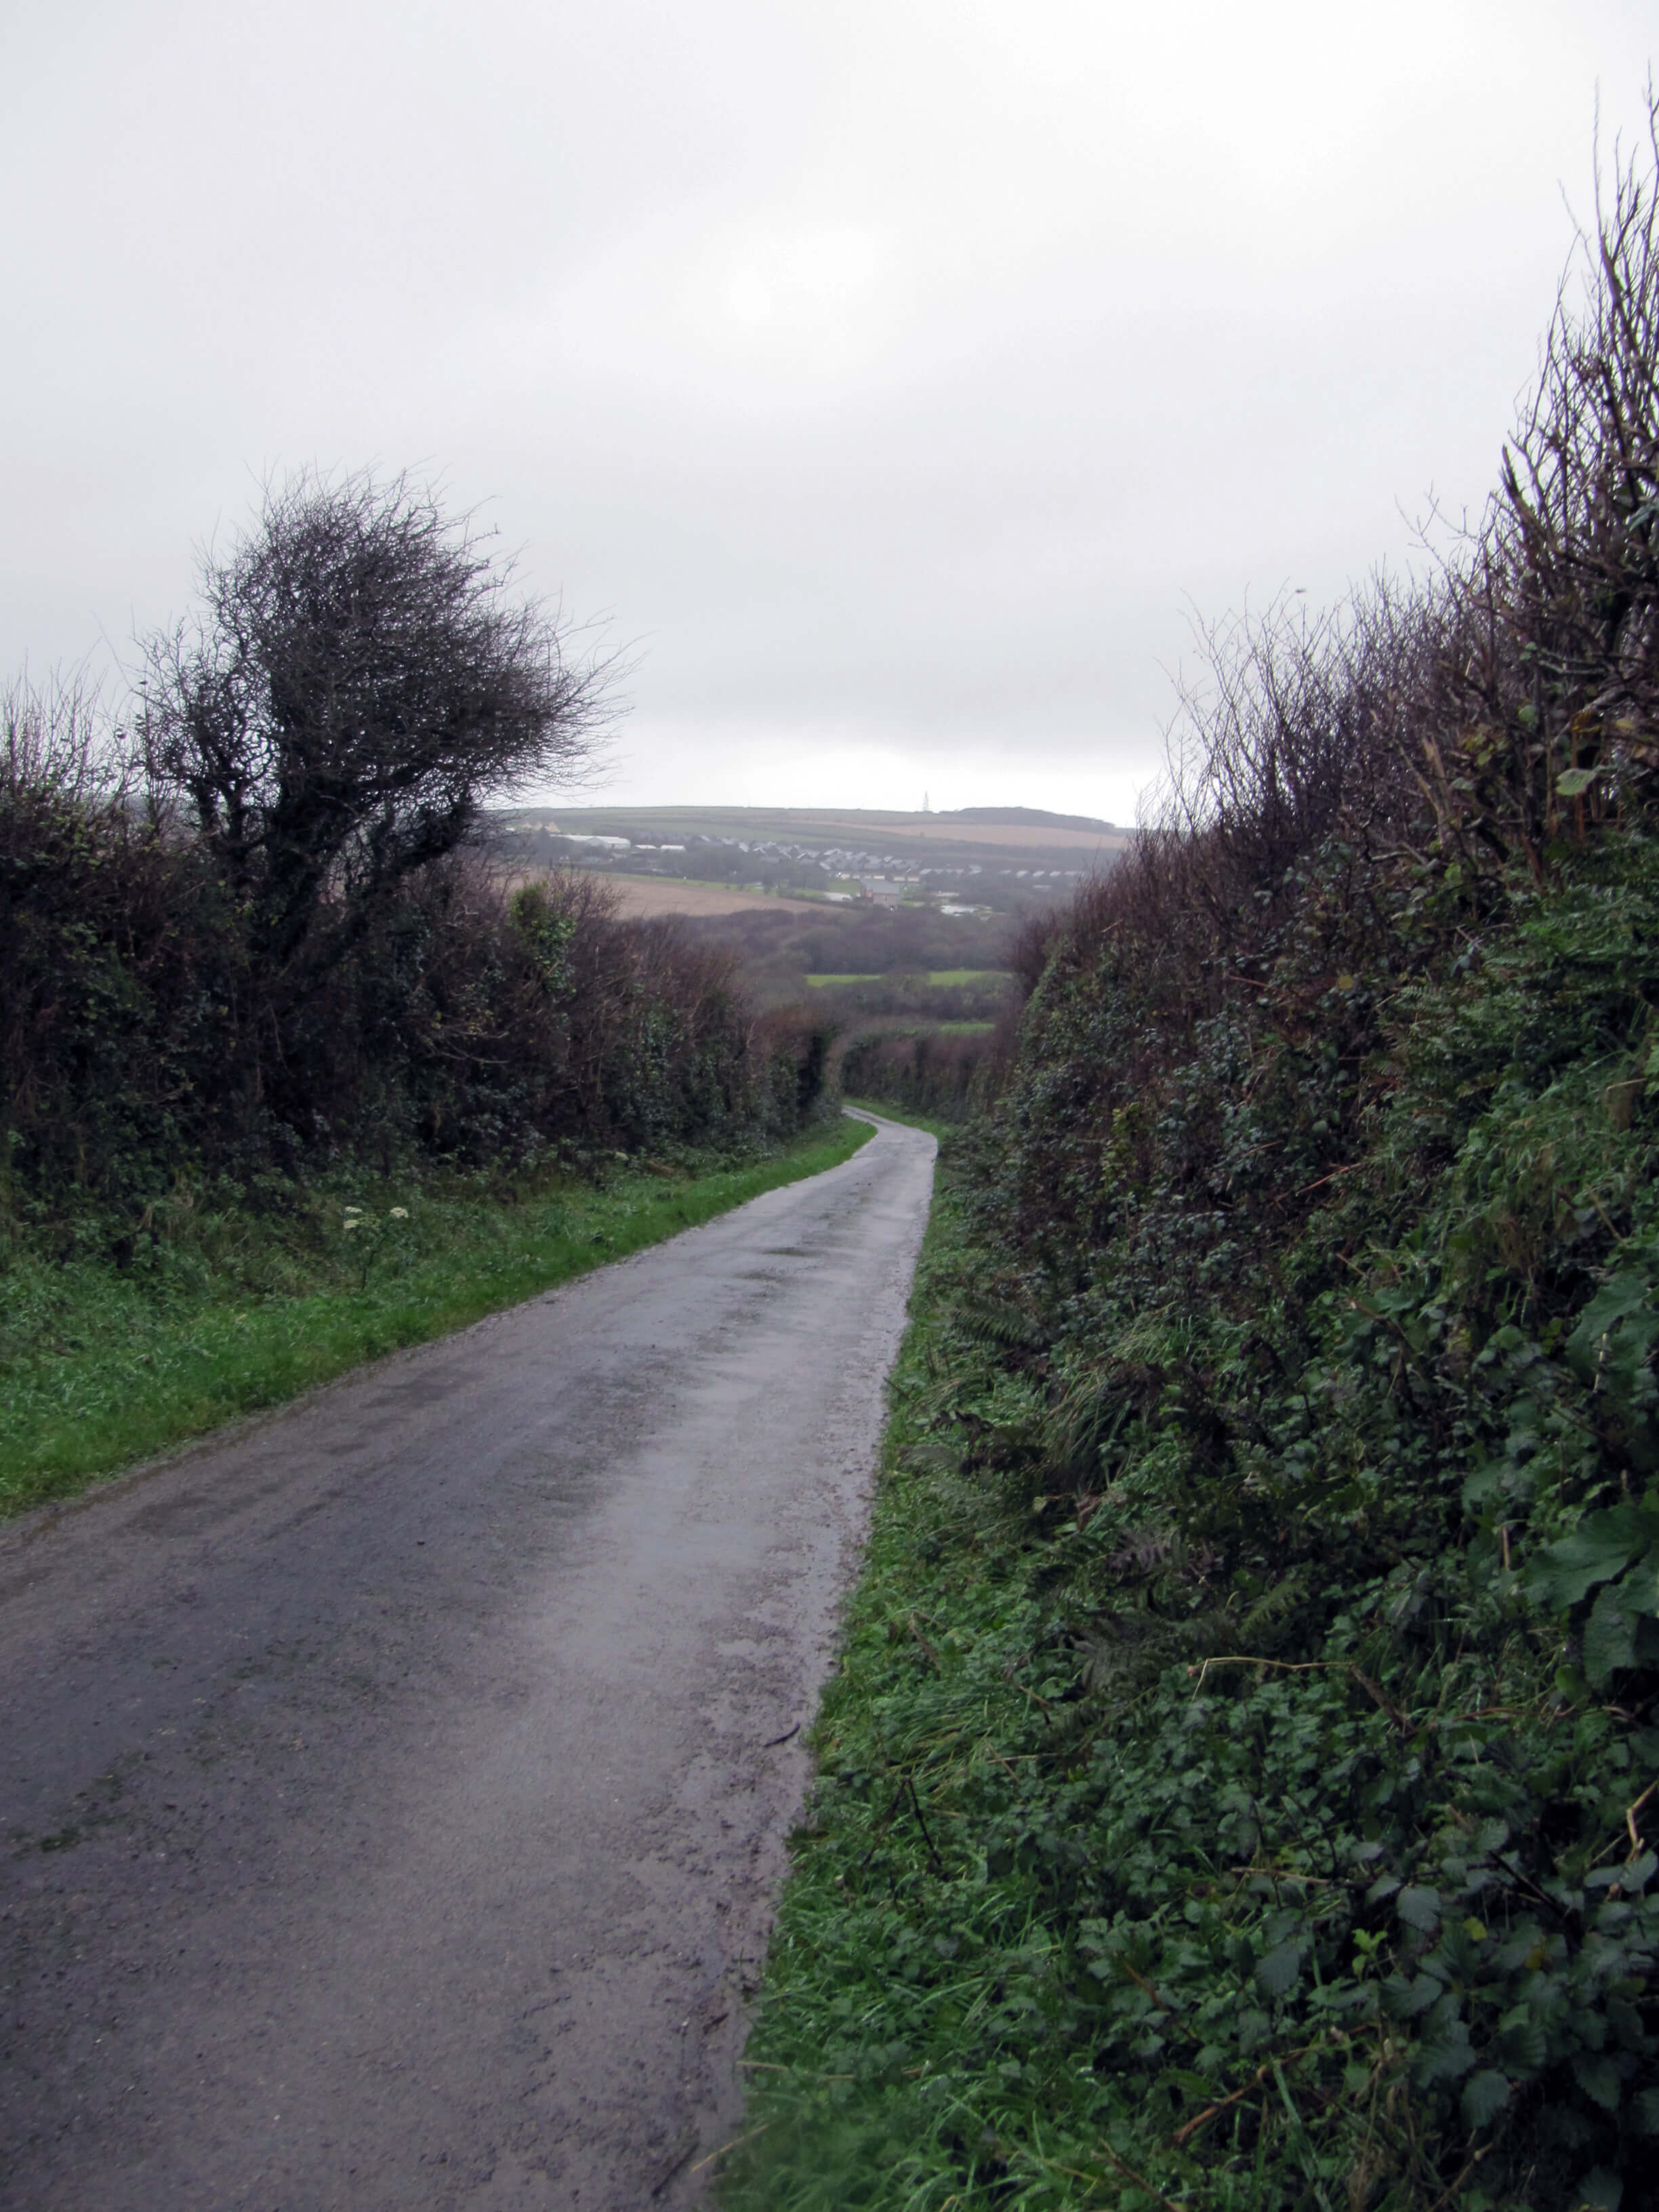 a rural road flanked by natural hedging on a foggy day